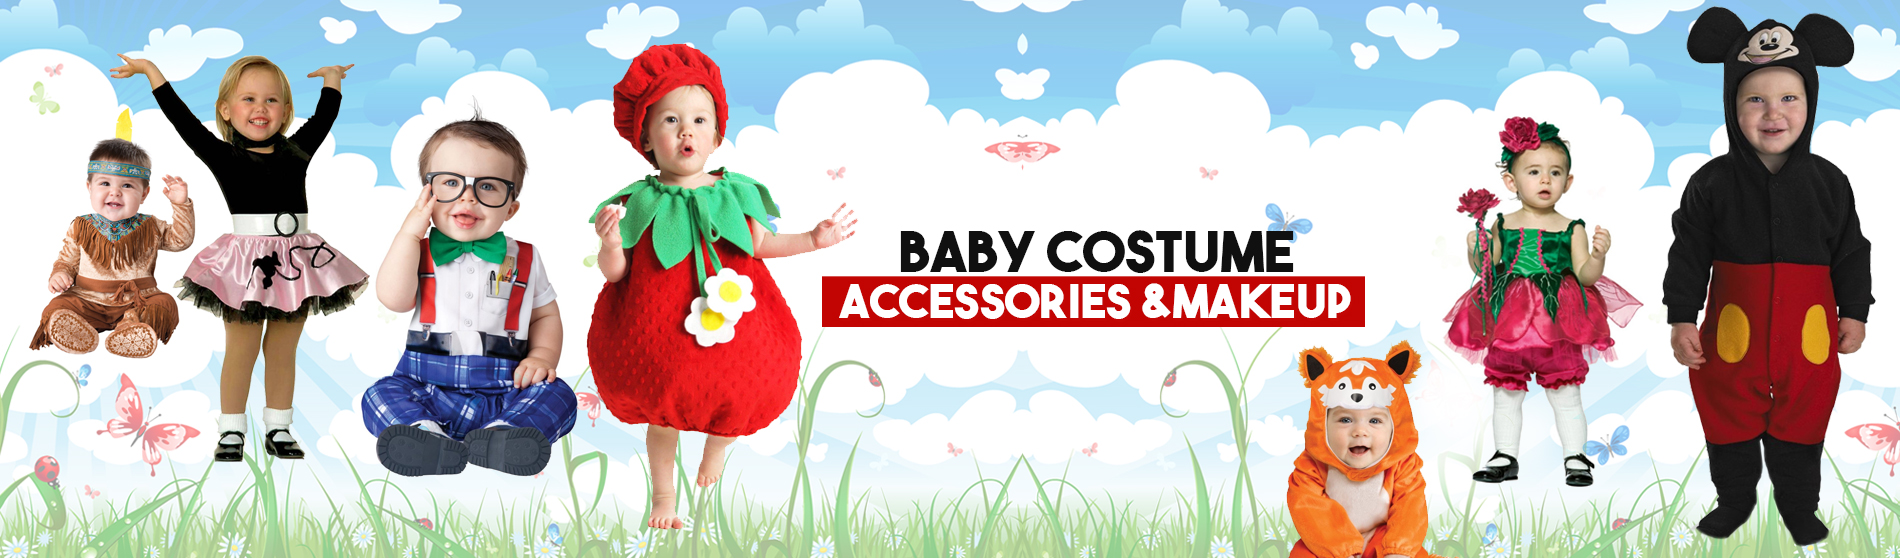 Baby-Costume-Accessories-Makeup